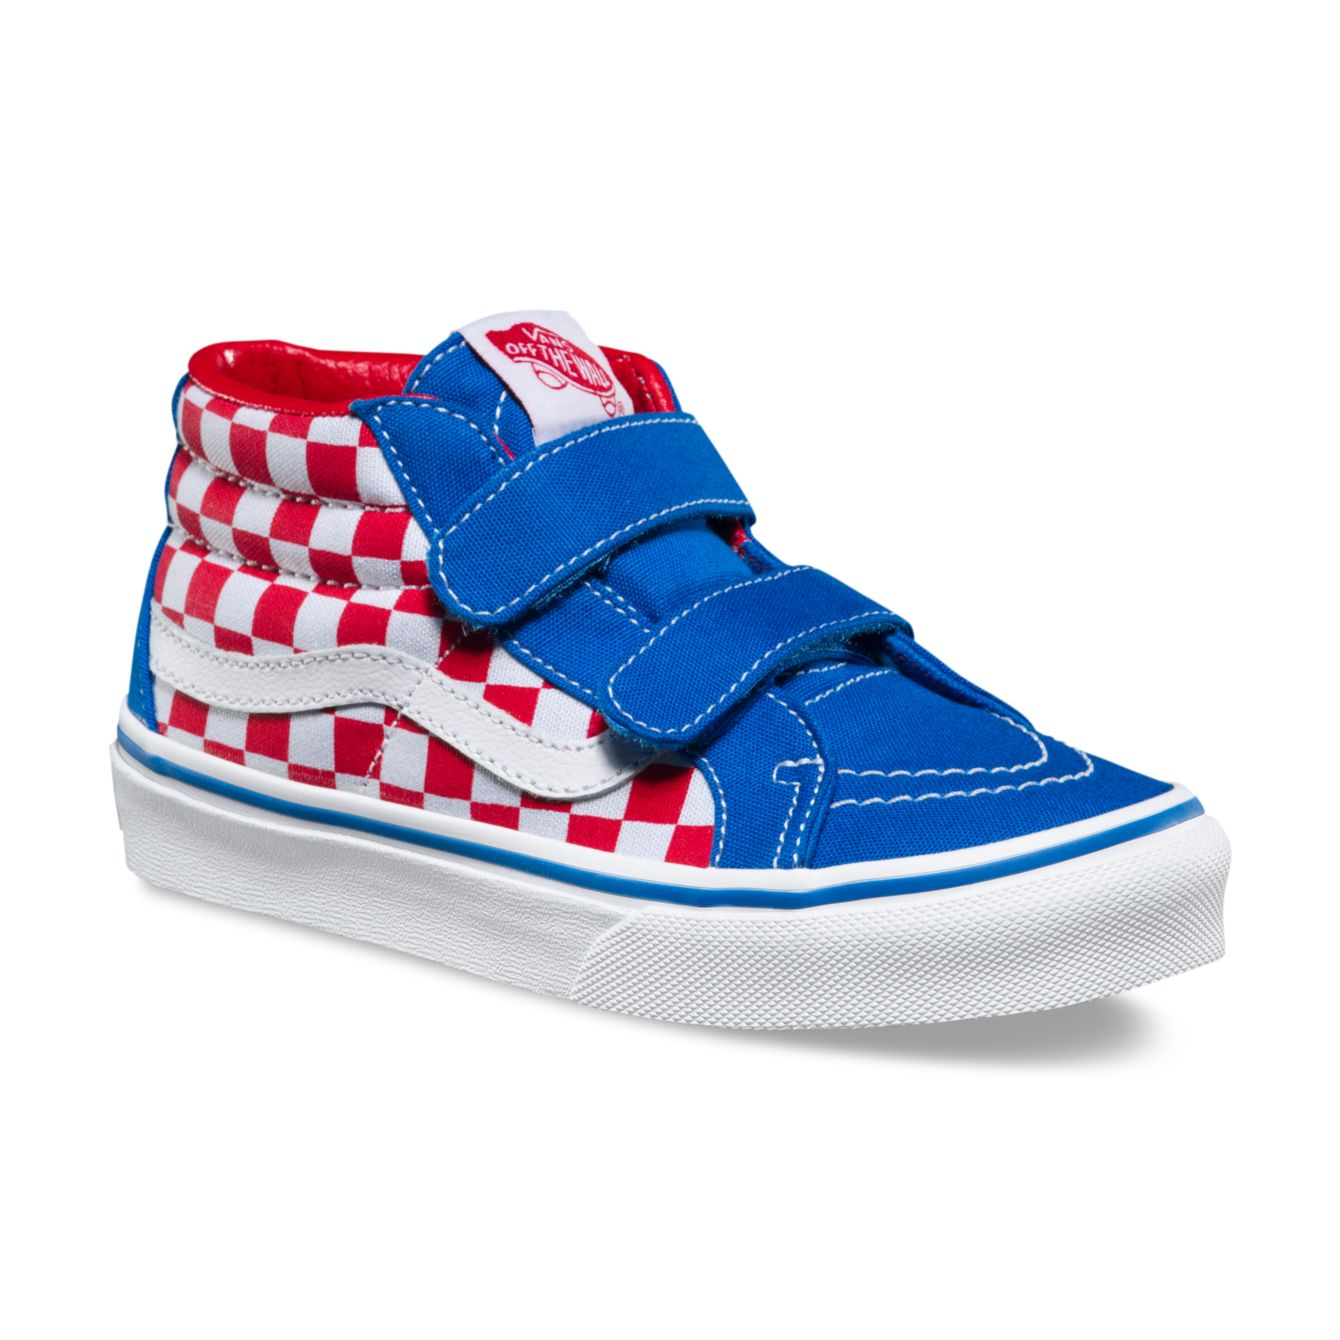 7fe13a1dab Vans Sk8-Mid Reissue V (Checkerboard) Racing Red